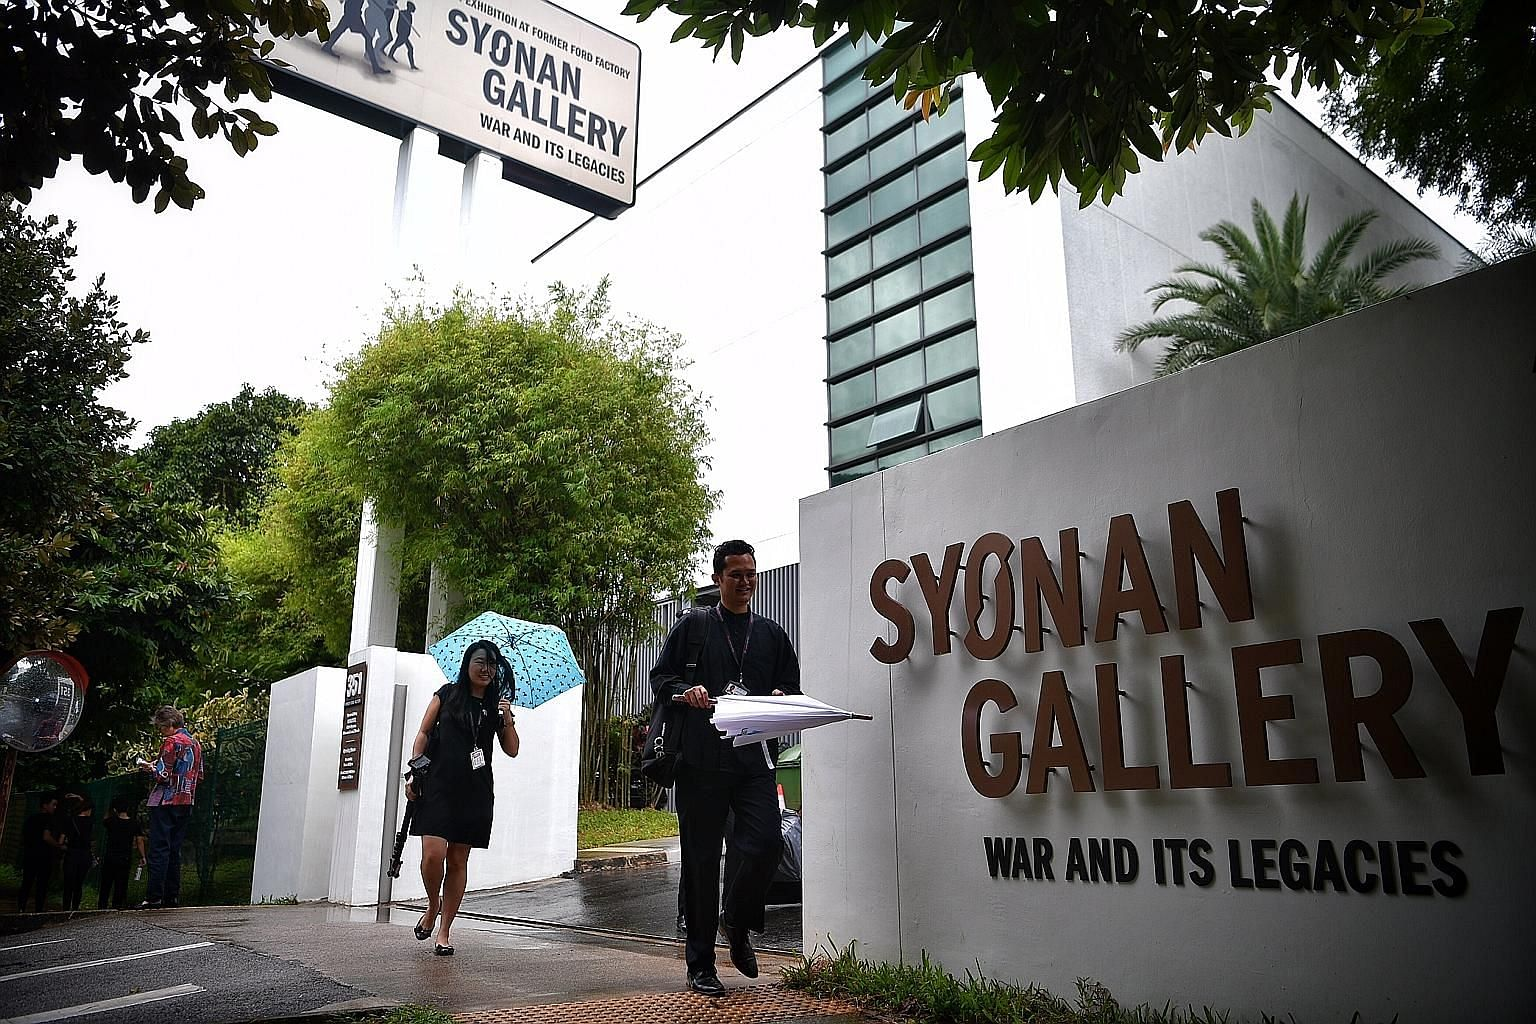 "(Above and left) Signs in front of the building and by the road now reflect the gallery's full name ""Syonan Gallery: War and Its Legacies"", and include the phrase ""An Exhibition at Former Ford Factory"". The name ""Syonan Gallery"" had upset some Singap"